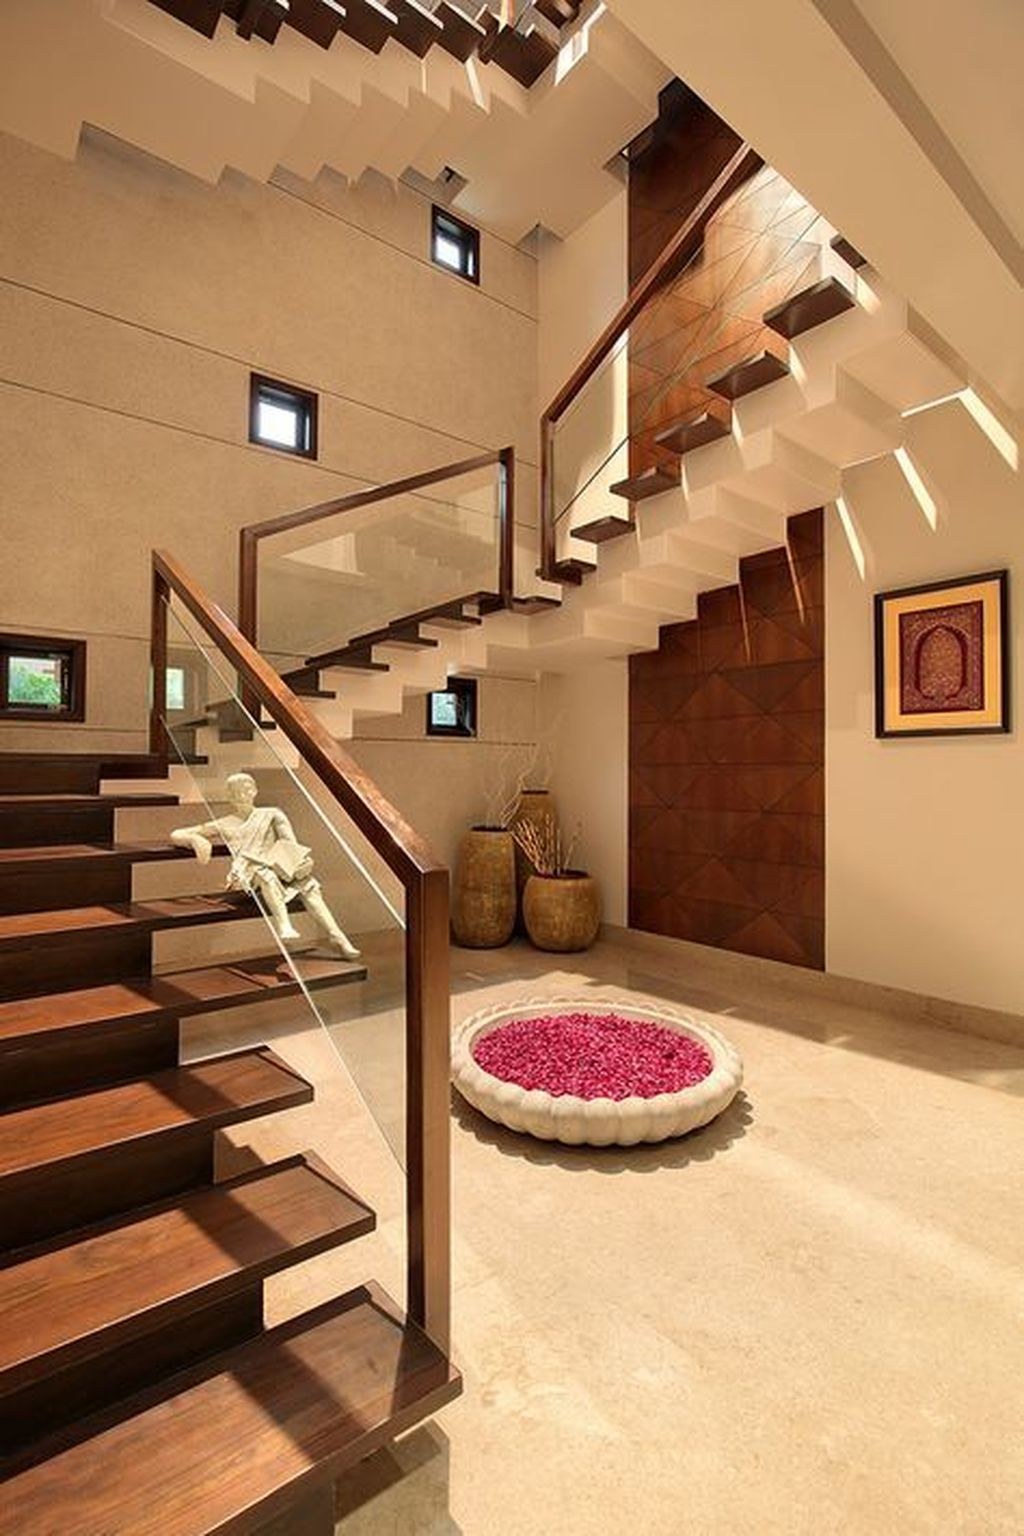 41 Chic Indoor Home Stairs Design Ideas For Your Home In 2020 | Inside Home Stairs Design | Light | Small Place | Trendy Home | Low Cost | Drawing Room